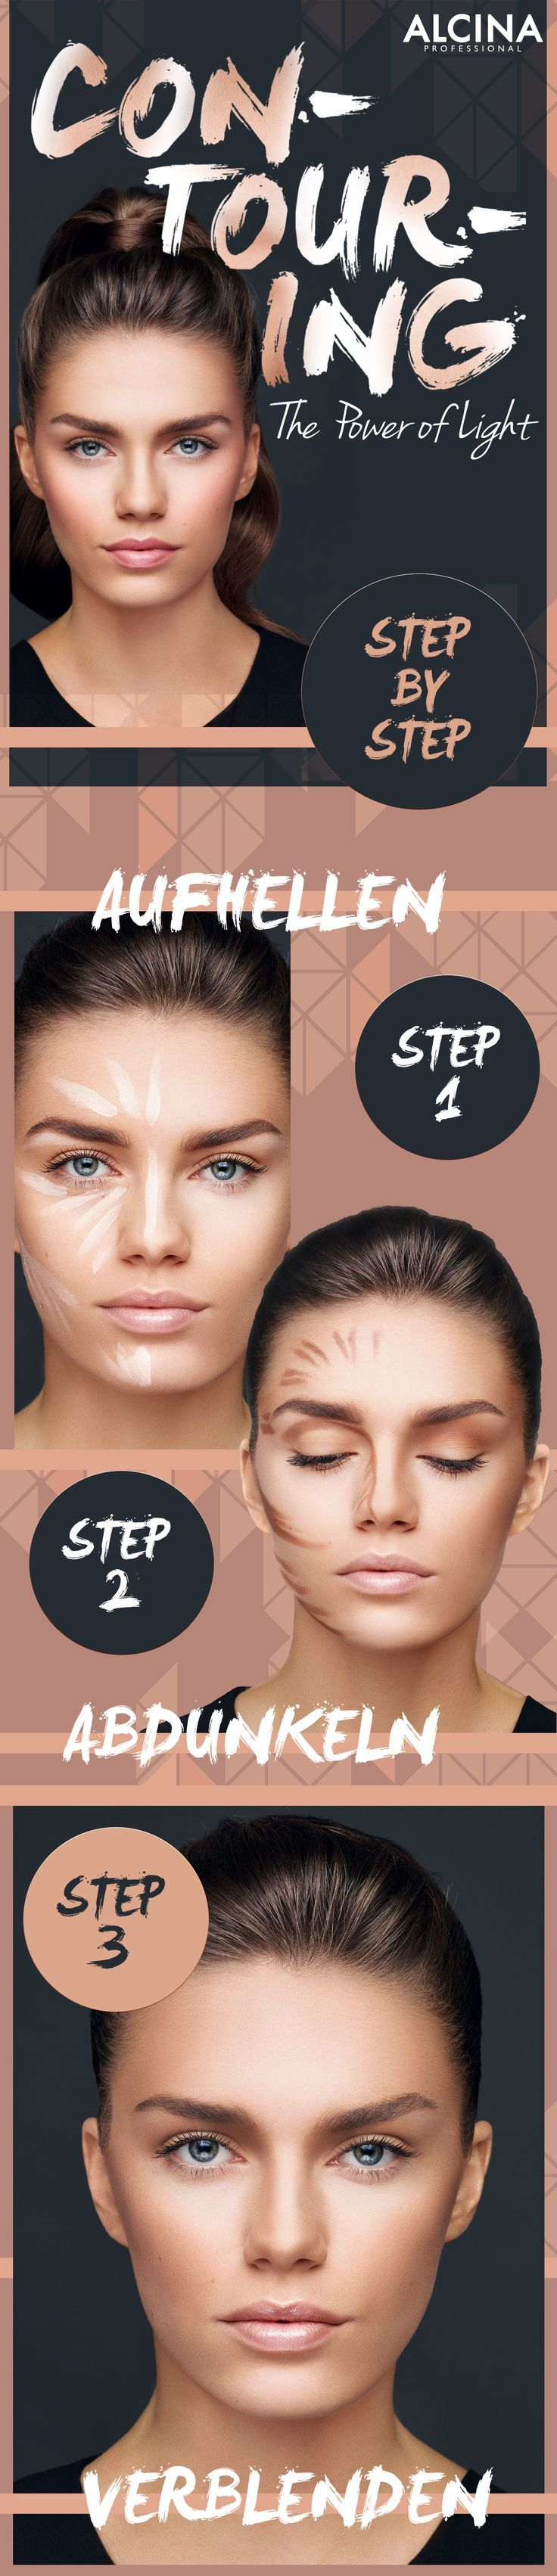 Contouring Guide: How To Contour Your Face Quickly And Easily As A Day M ...